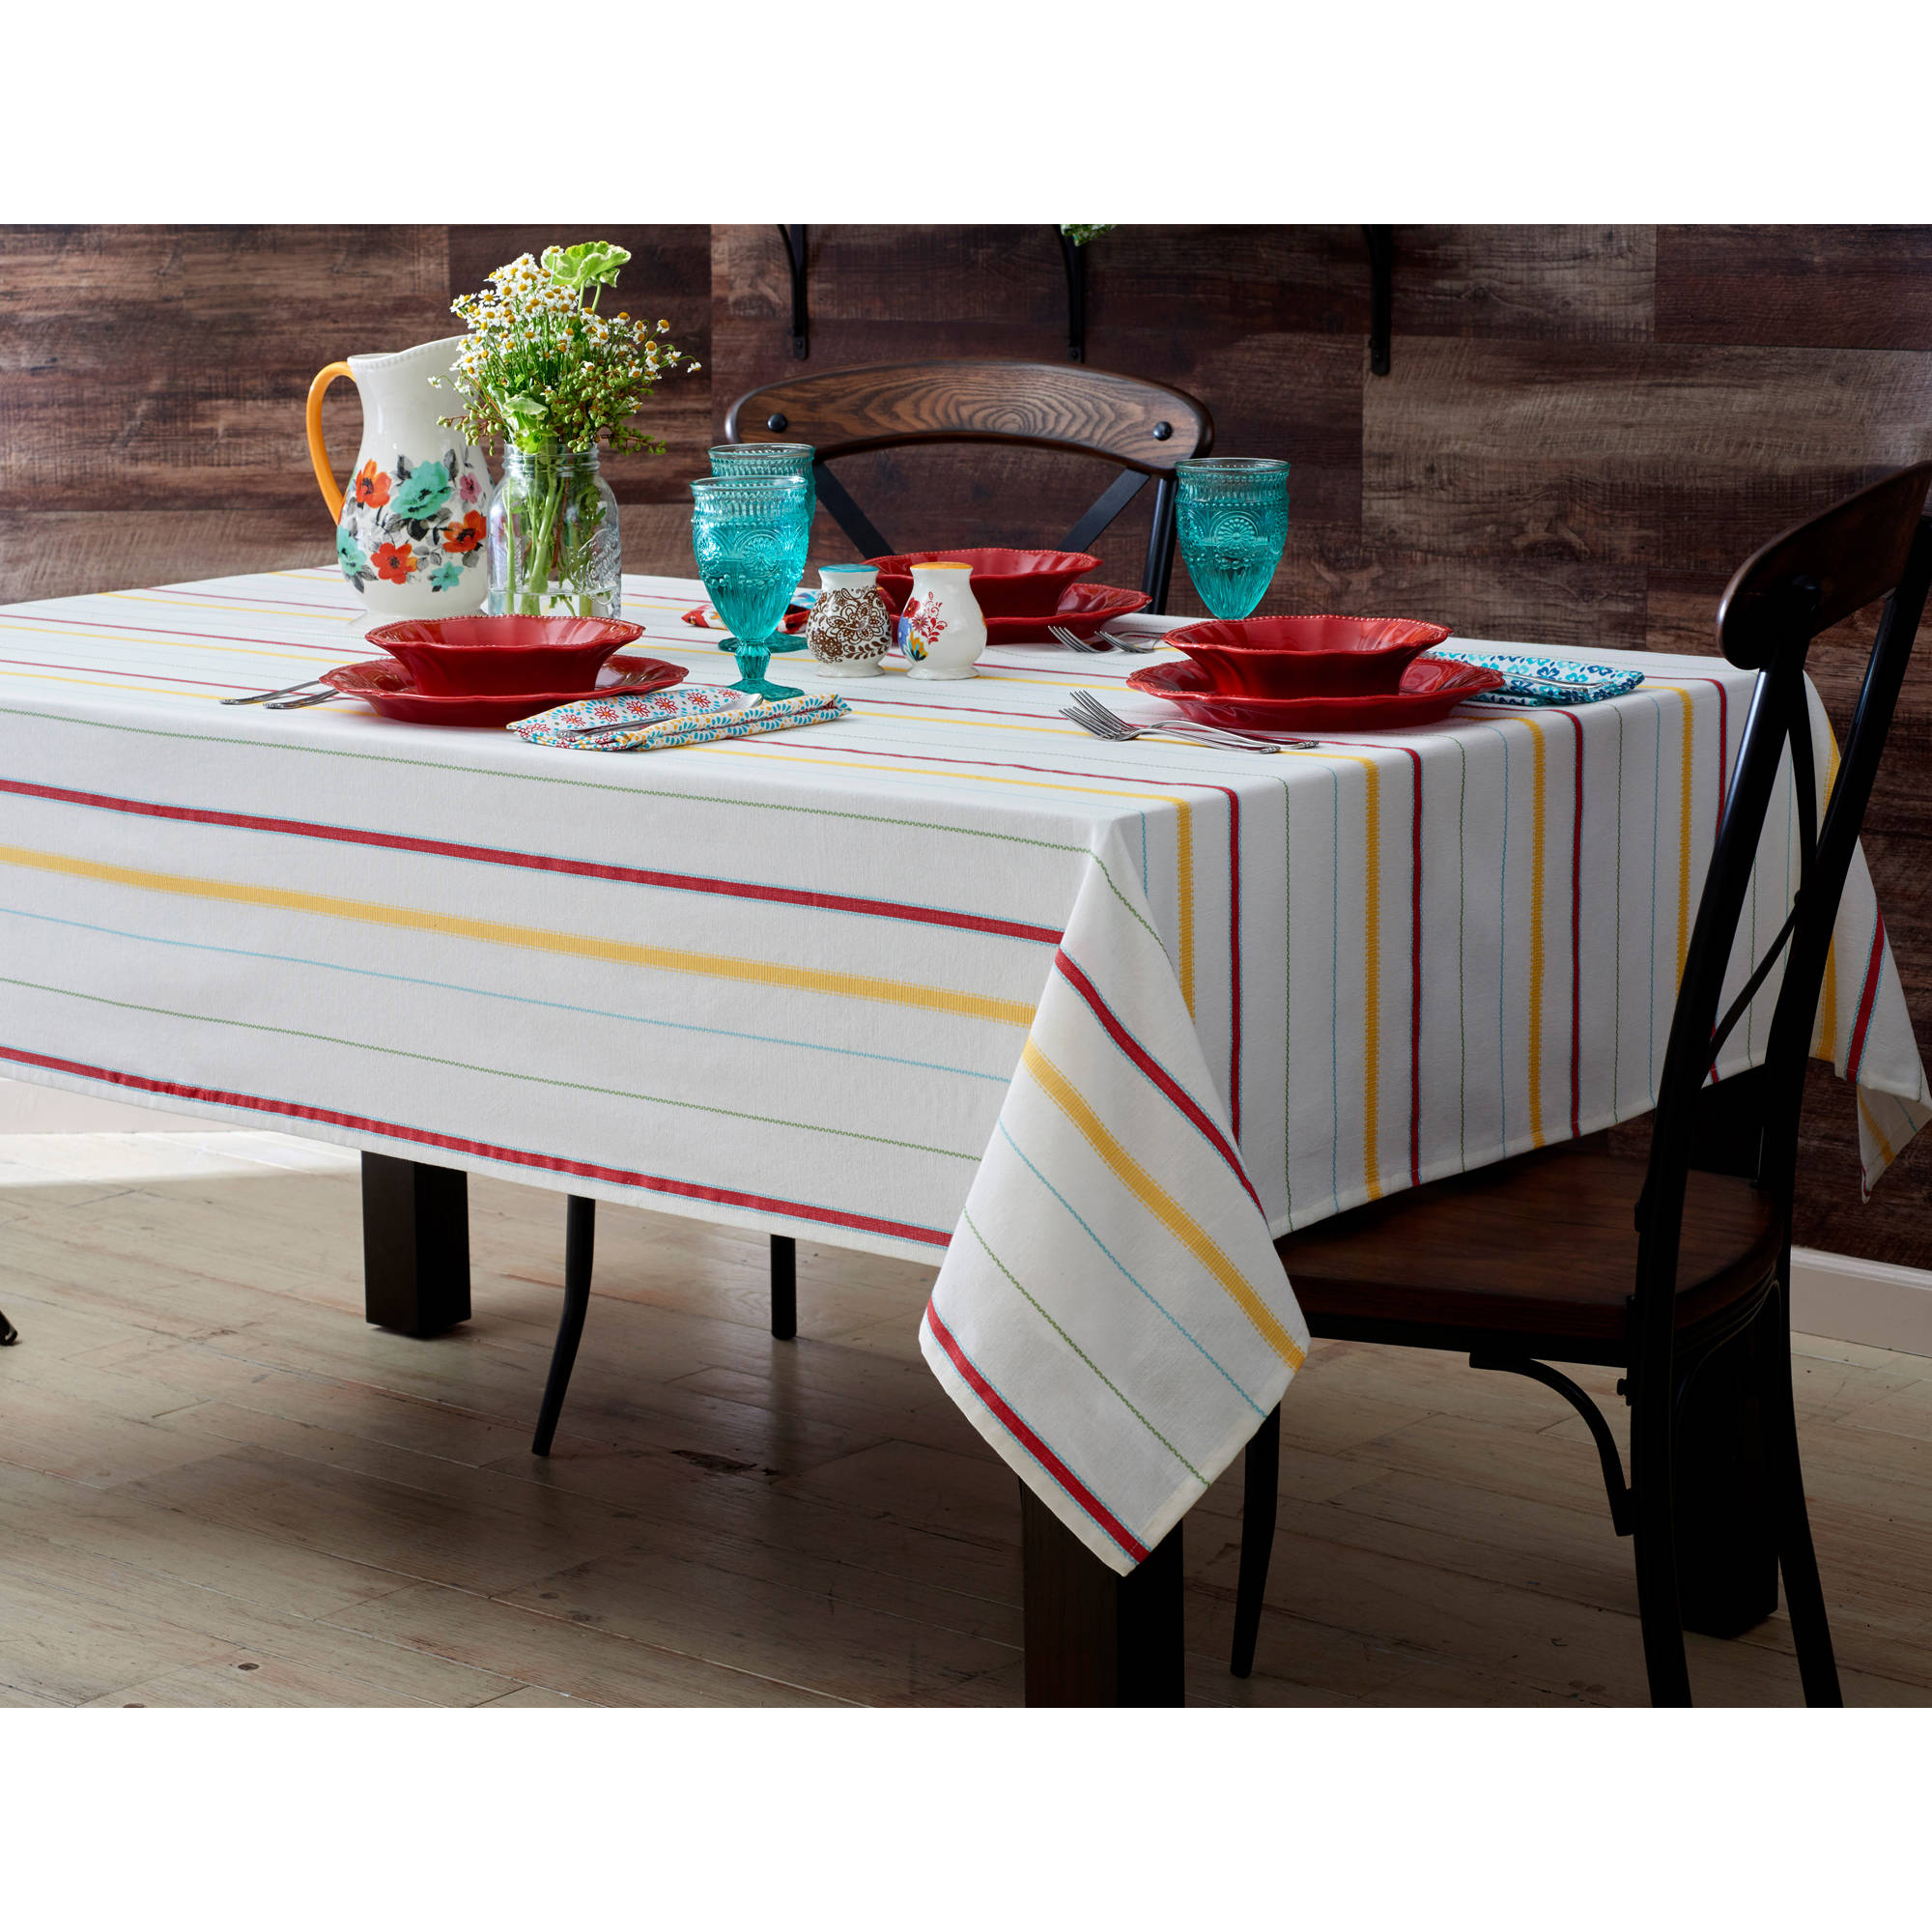 The Pioneer Woman Vintage Stripe Tablecloth Available In Multiple Sizes